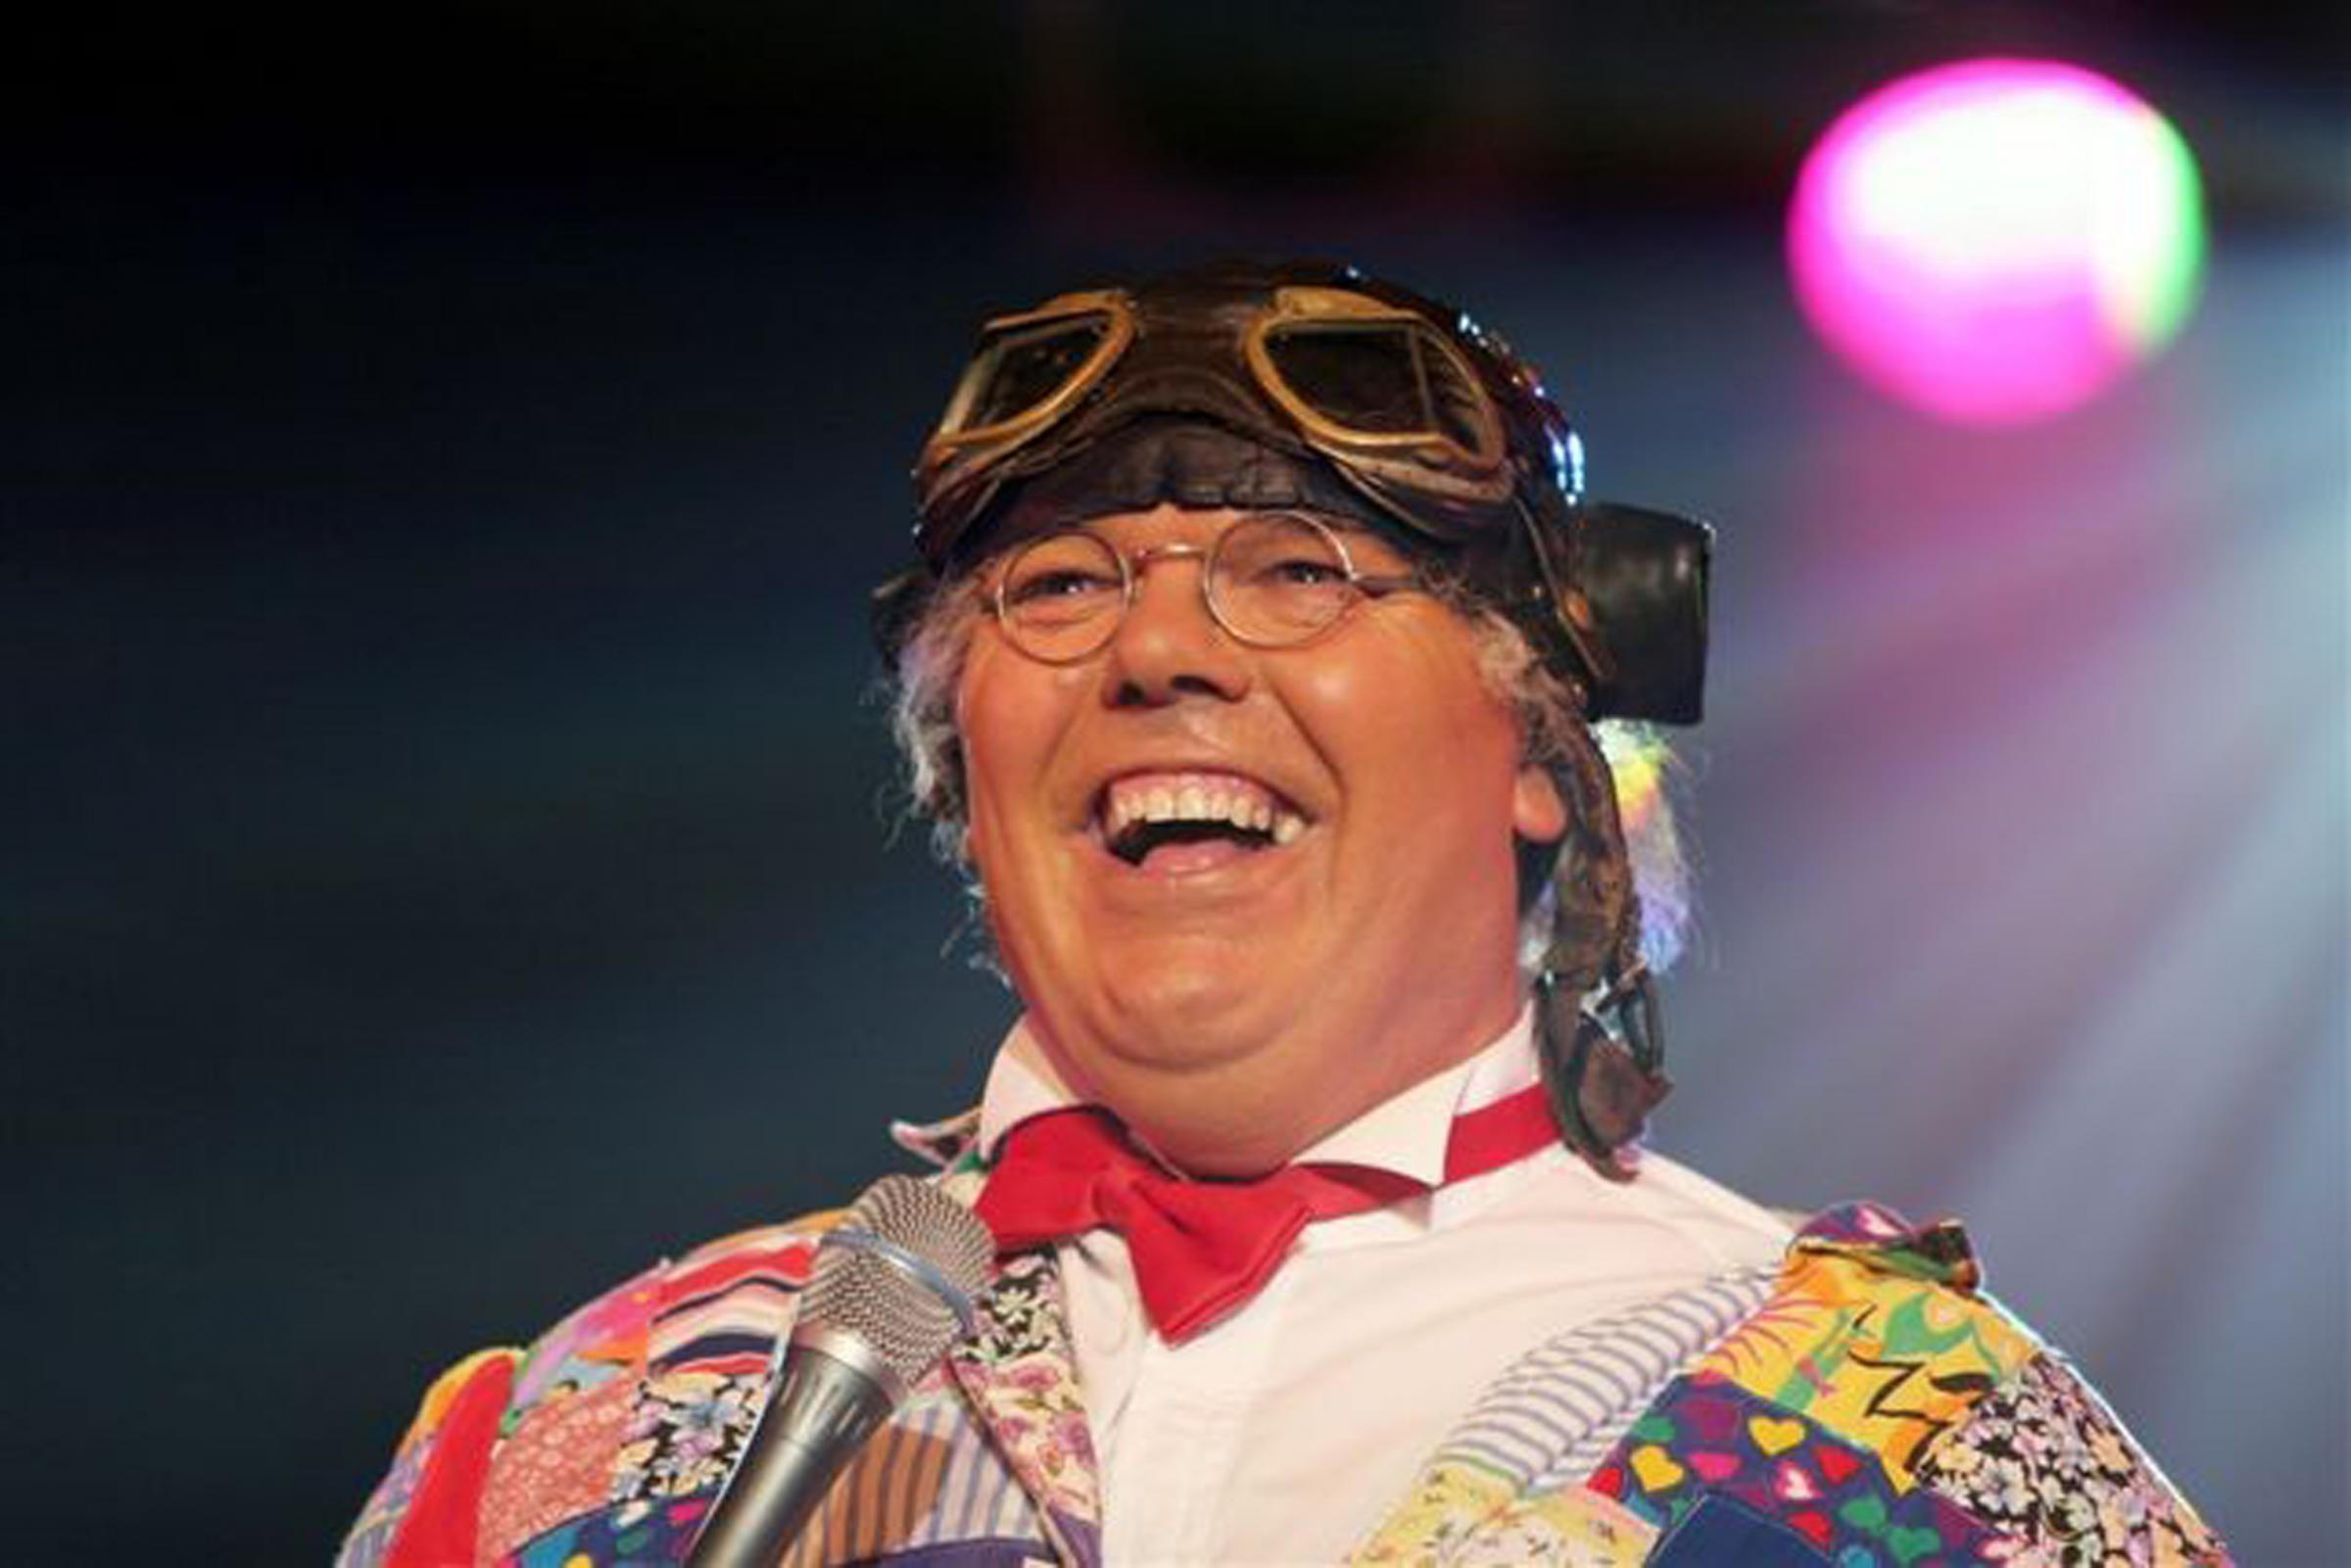 Roy 'Chubby' Brown is plays Dartford, Wimbledon and Epsom in his new tour